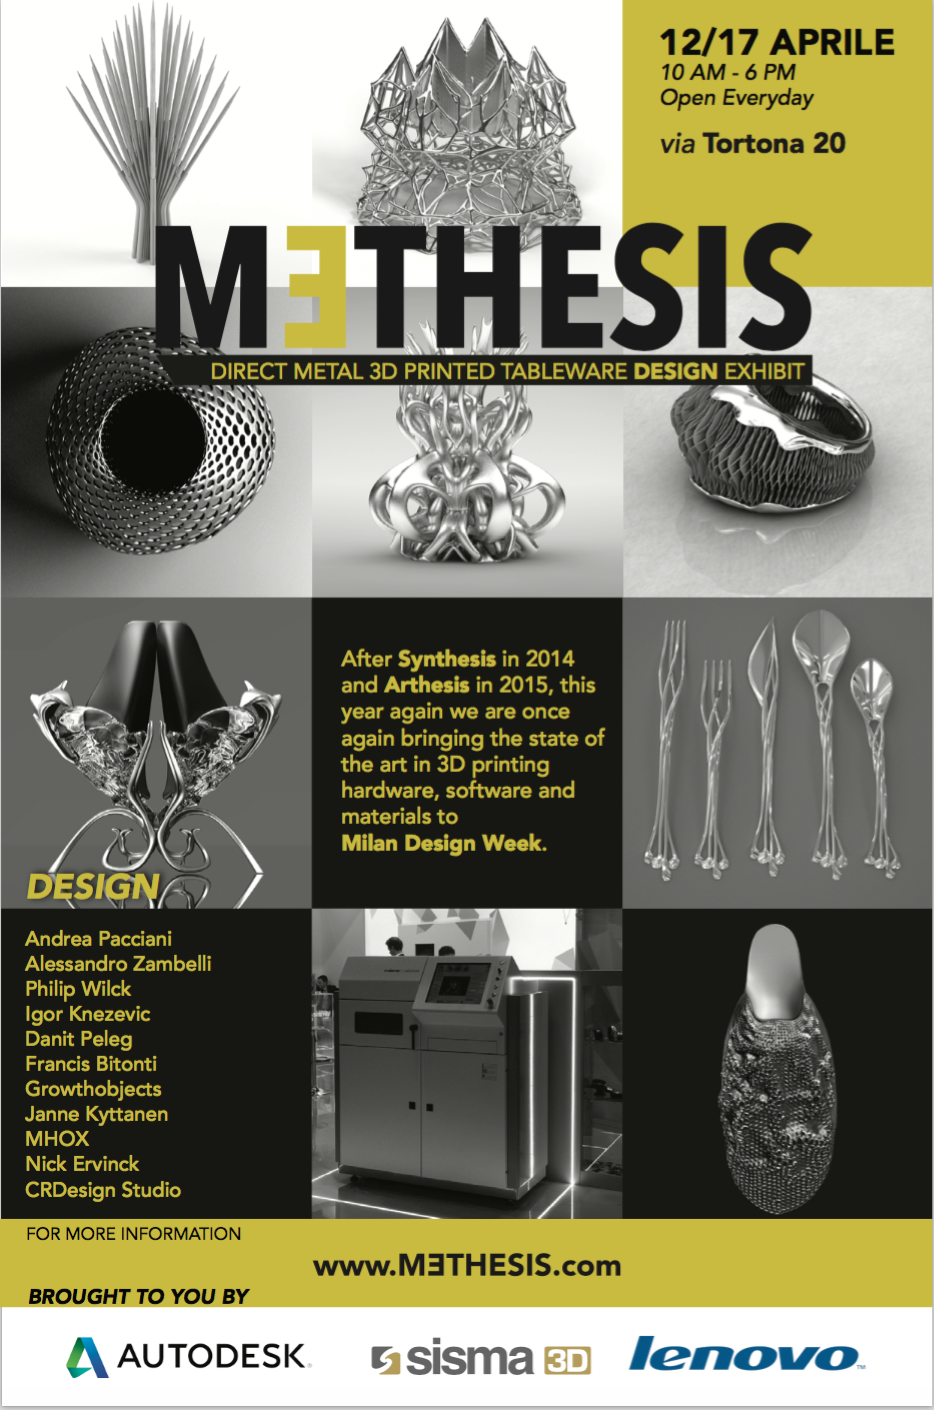 D Printing Exhibition Birmingham : MƎthesis event takes metal d printing to milan design